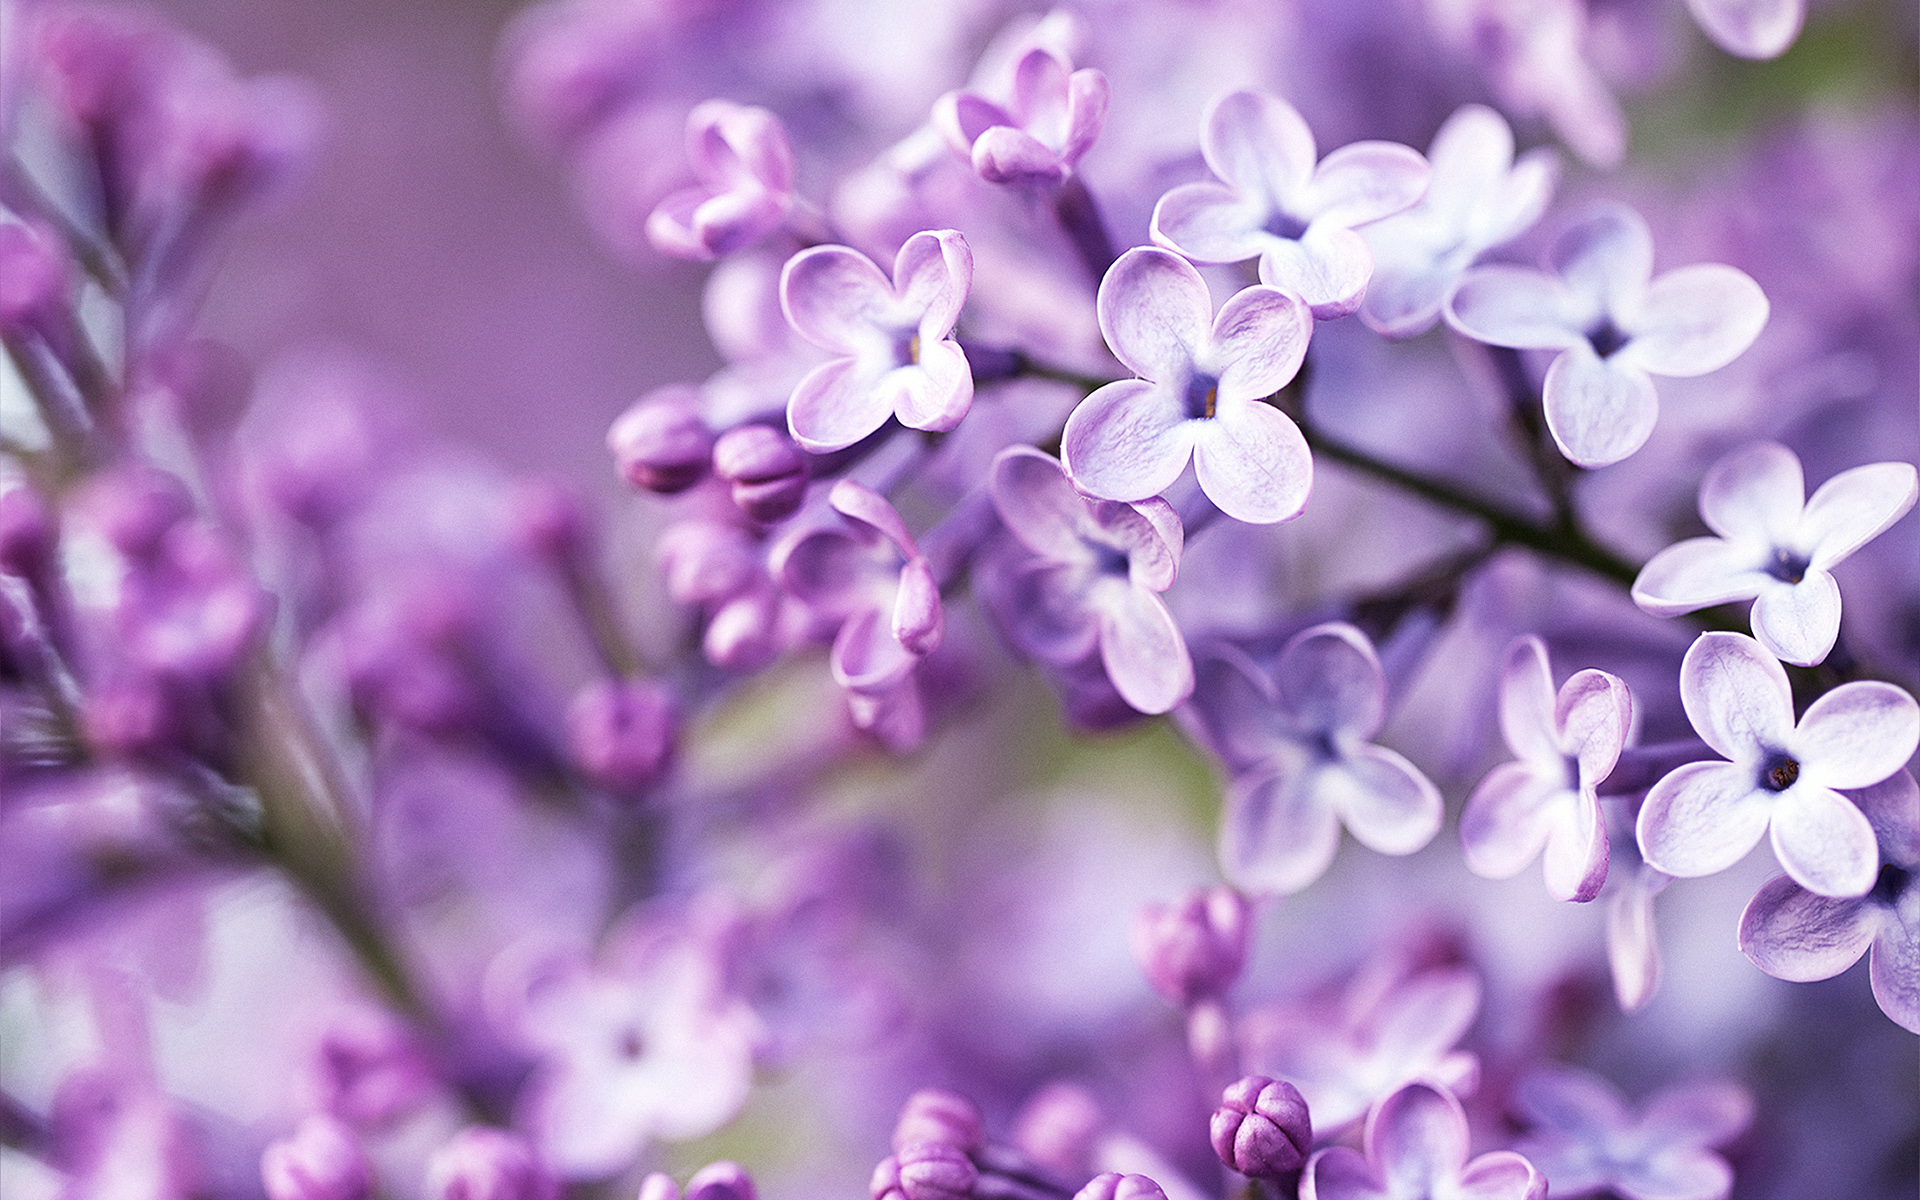 Spring Purple Flowers 342.86 Kb